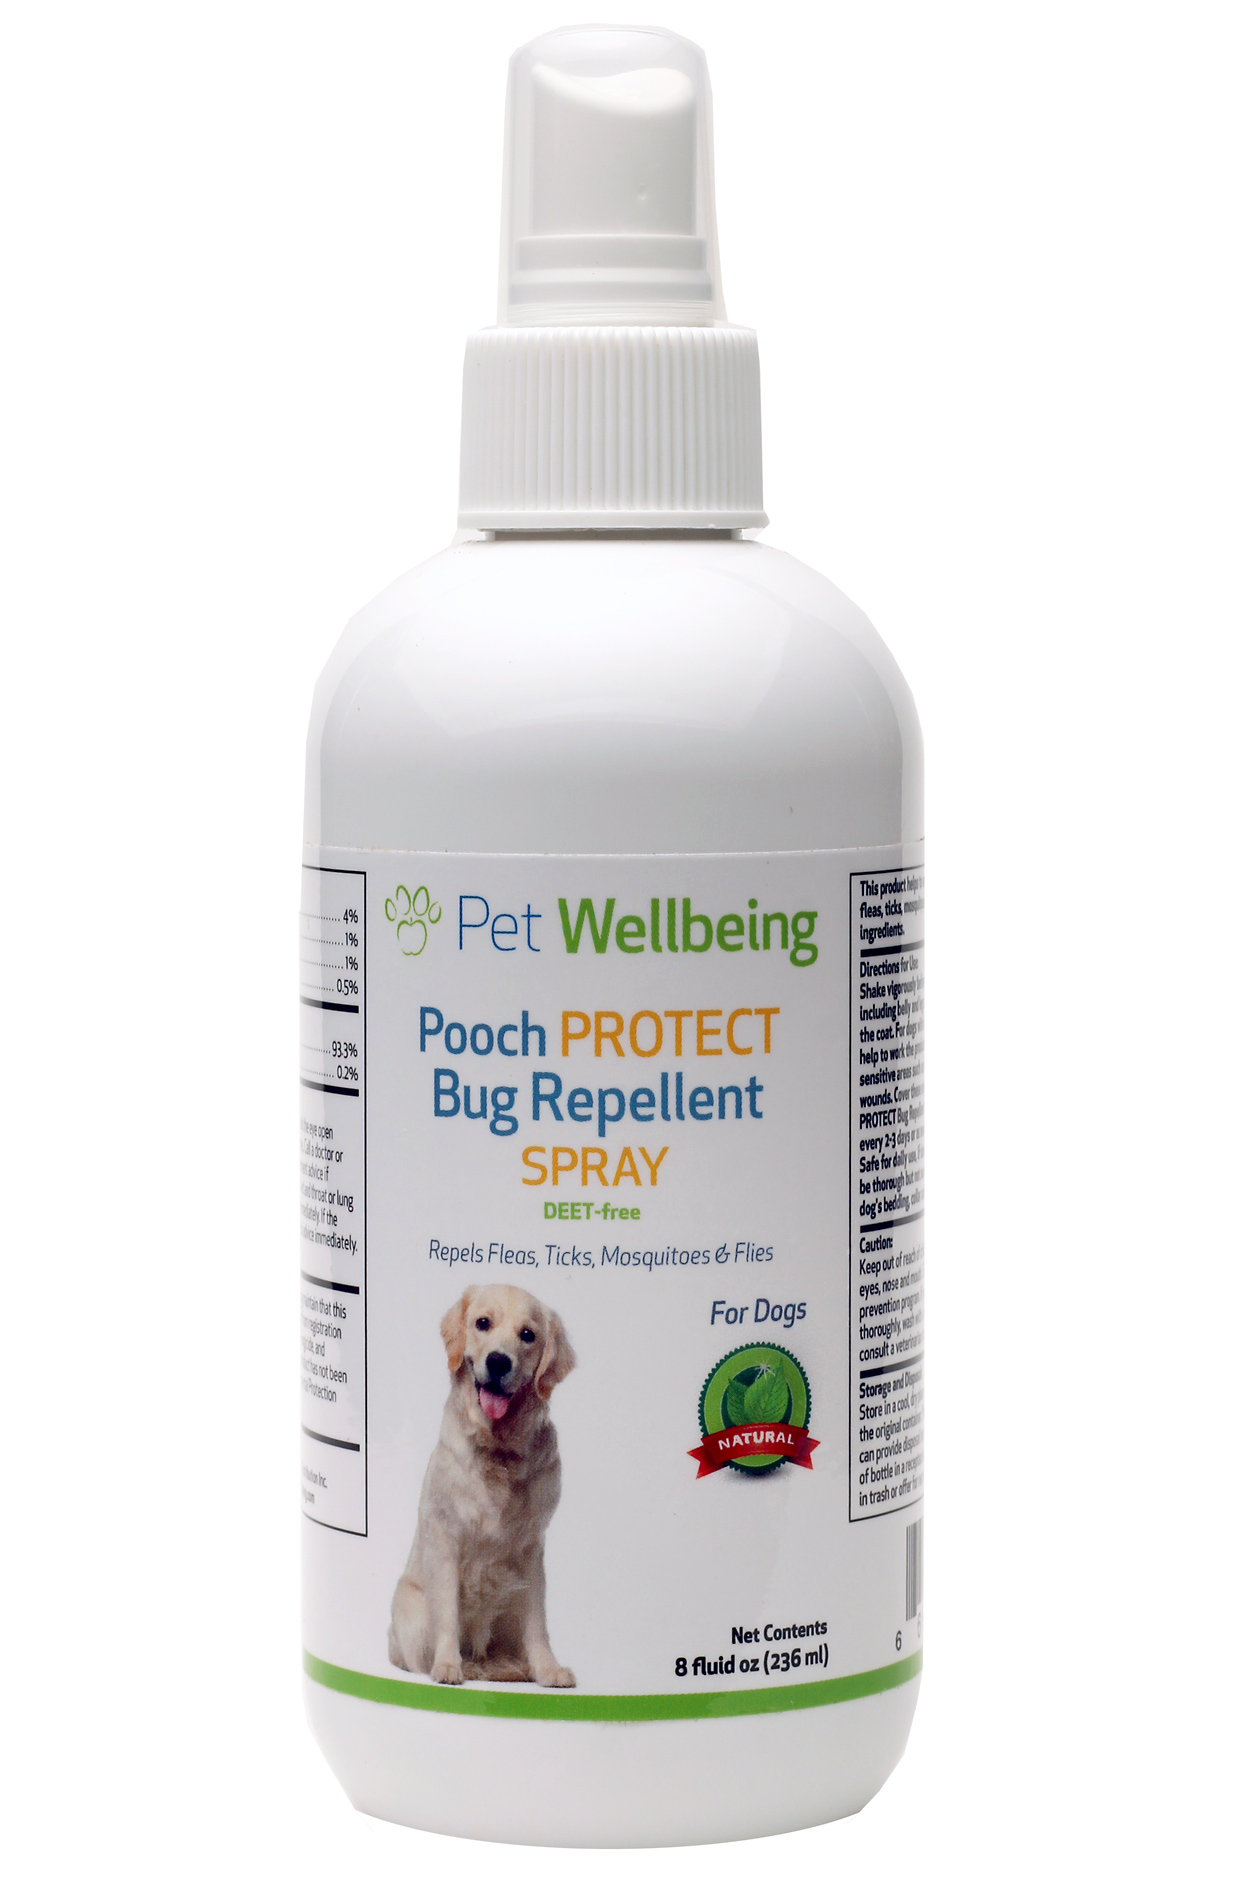 Pooch Protect Bug Repellent Spray For Dogs Petwellbeing Com